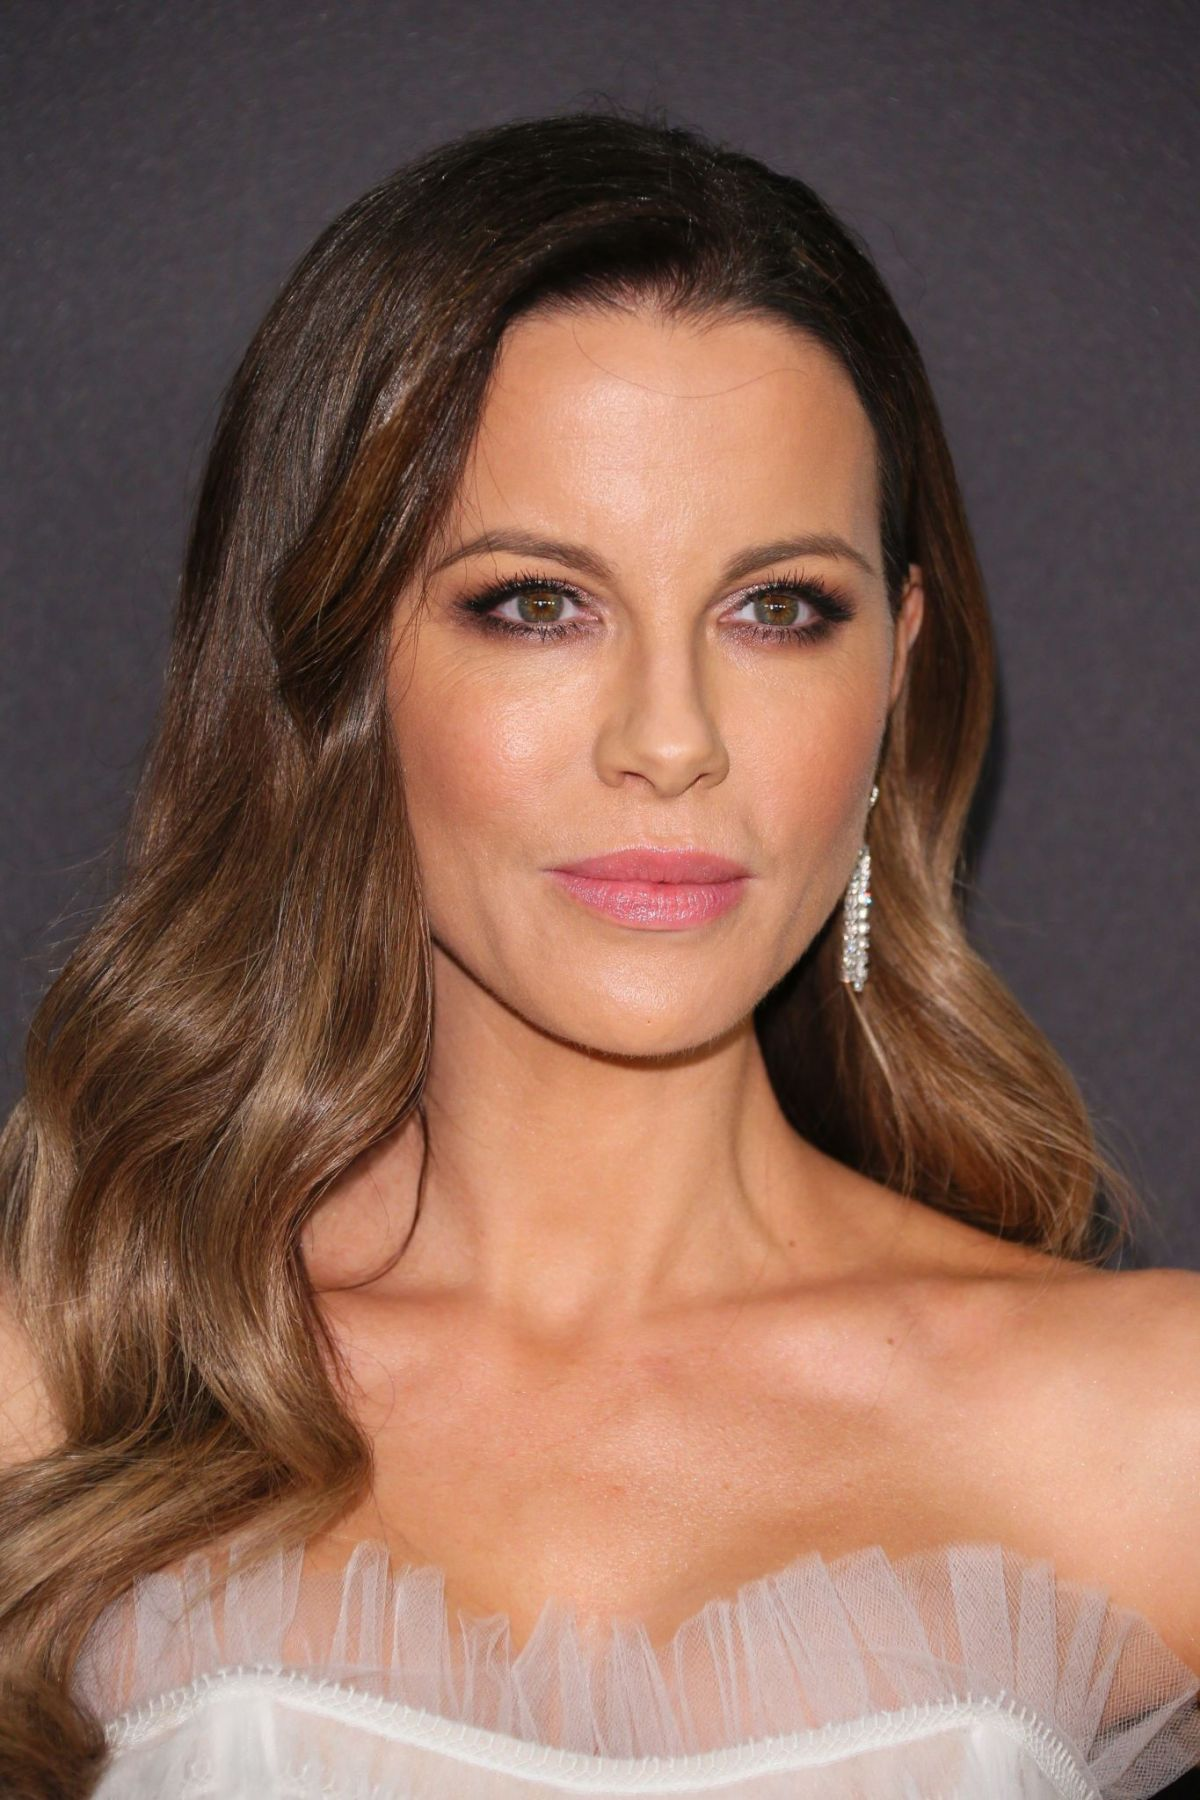 kate-beckinsale-at-instyle-and-warner-bros-golden-globe-awards-afterparty-in-beverly-hills-01-06-2019-8.jpg